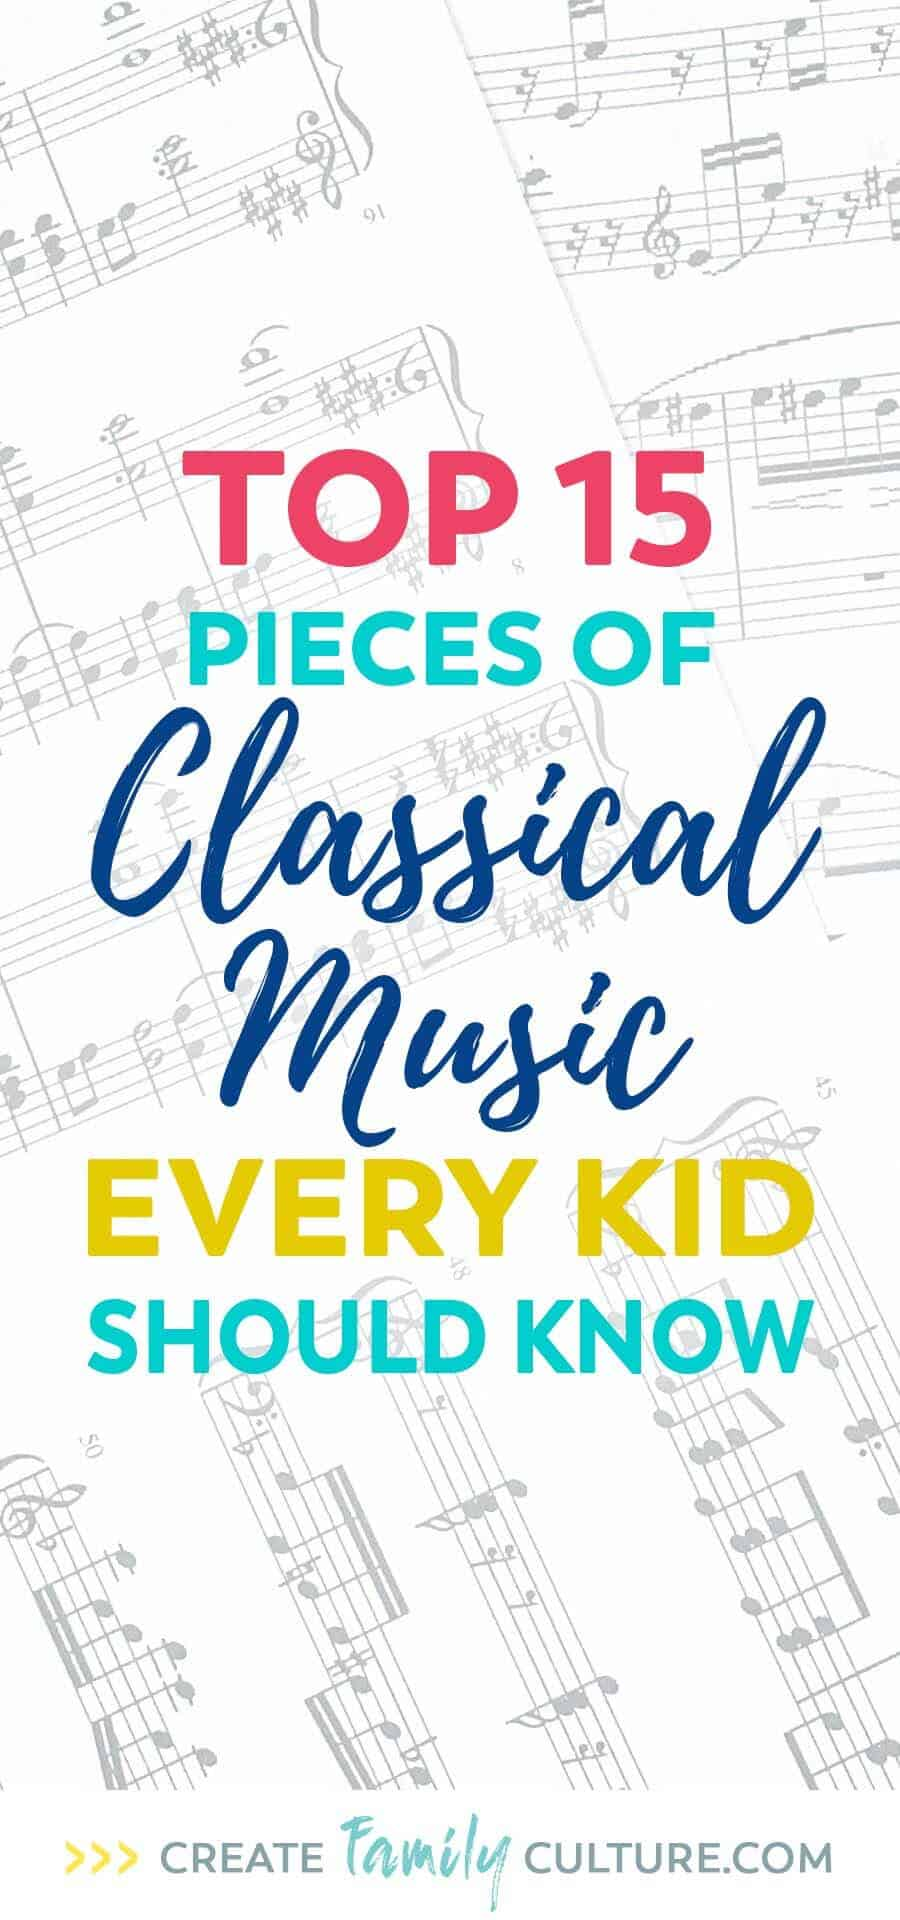 Top 15 pieces of classical music every kid should know. Classical Music for Kids | music appreciation | elementary music